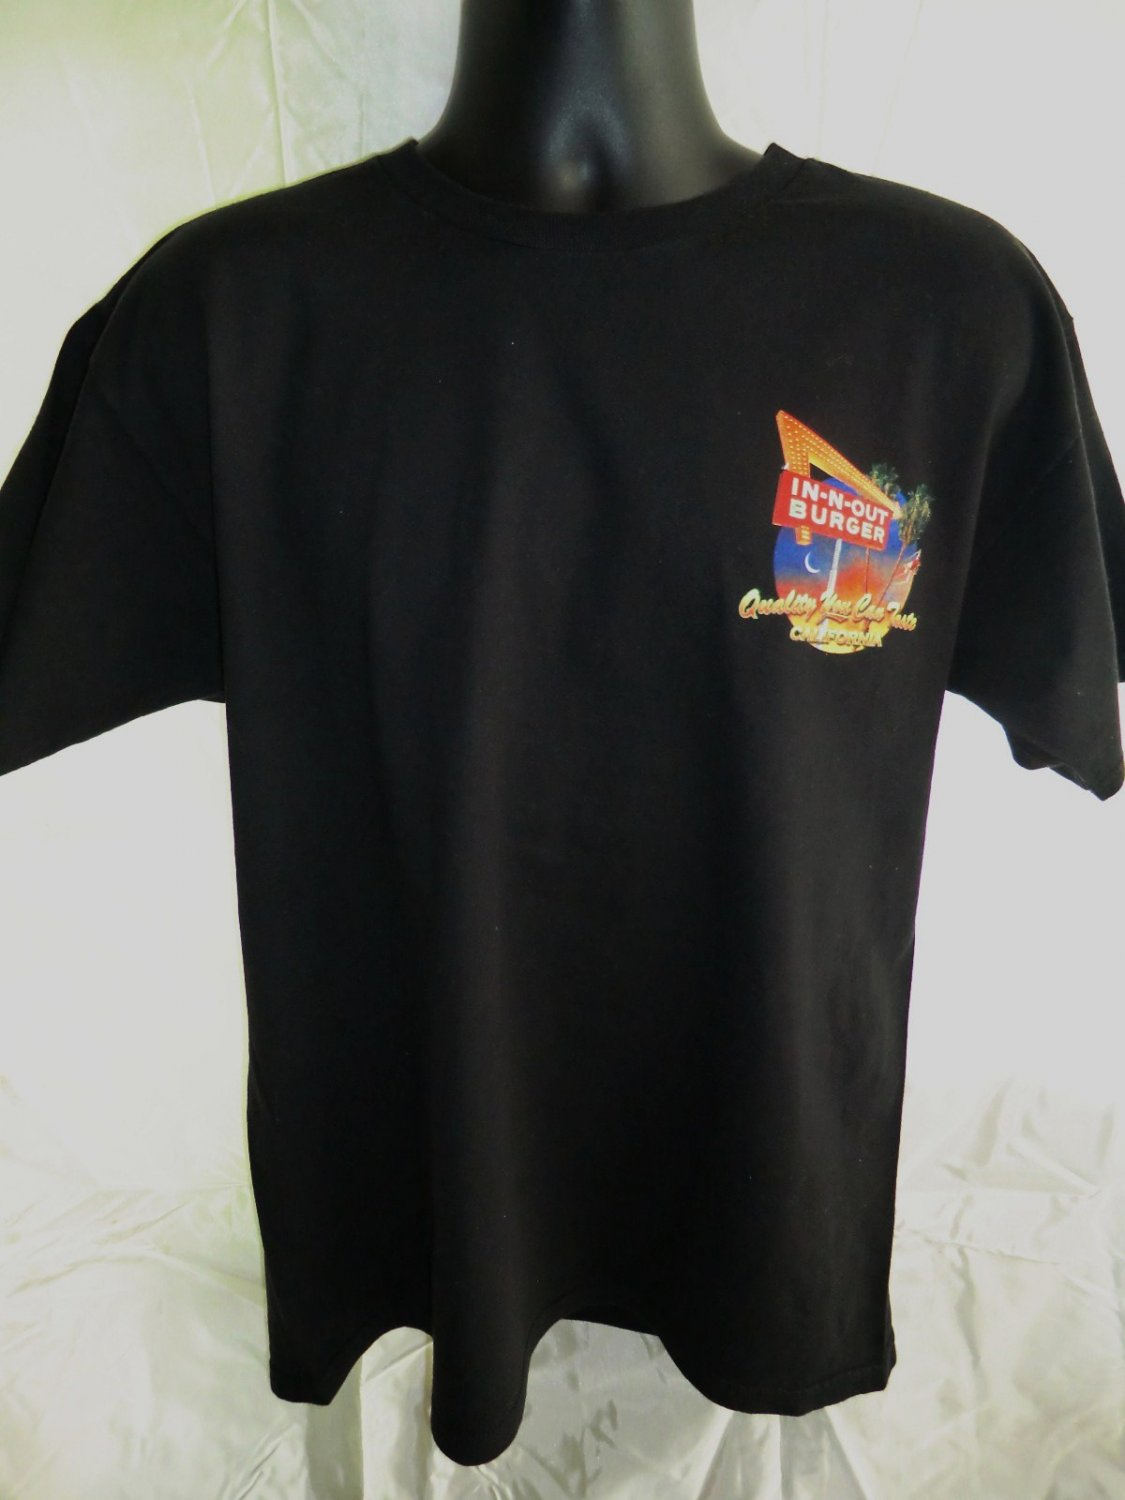 SOLD! In-N-Out Burger Black Large T-Shirt Cool Cars